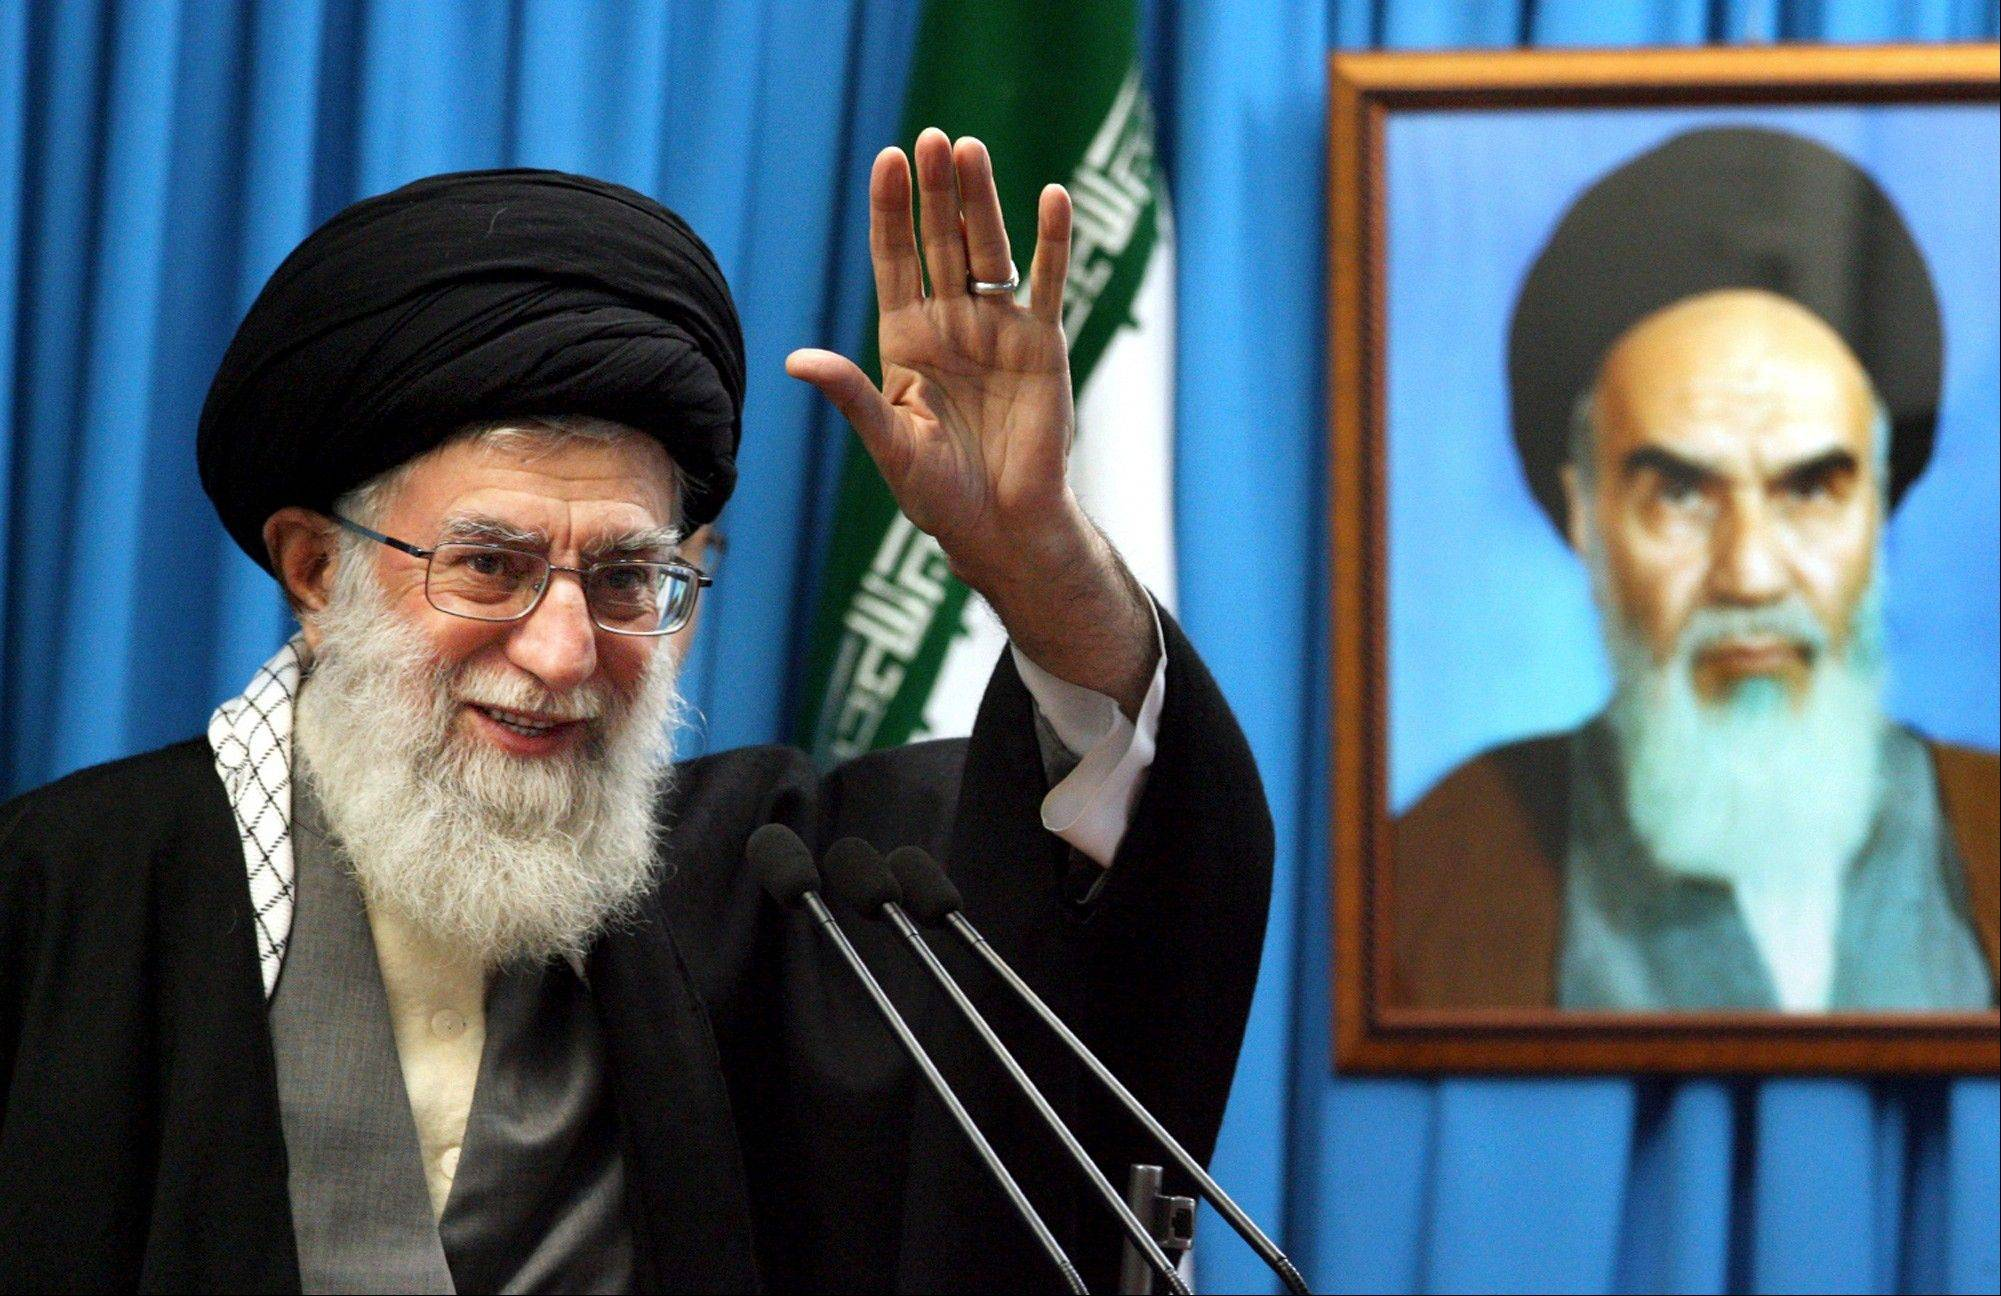 Iranian supreme leader Ayatollah Ali Khamenei strongly rejected proposals for direct talks with United States, apparently quashing suggestions for a breakthrough dialogue on the nuclear standoff and potentially other issues.